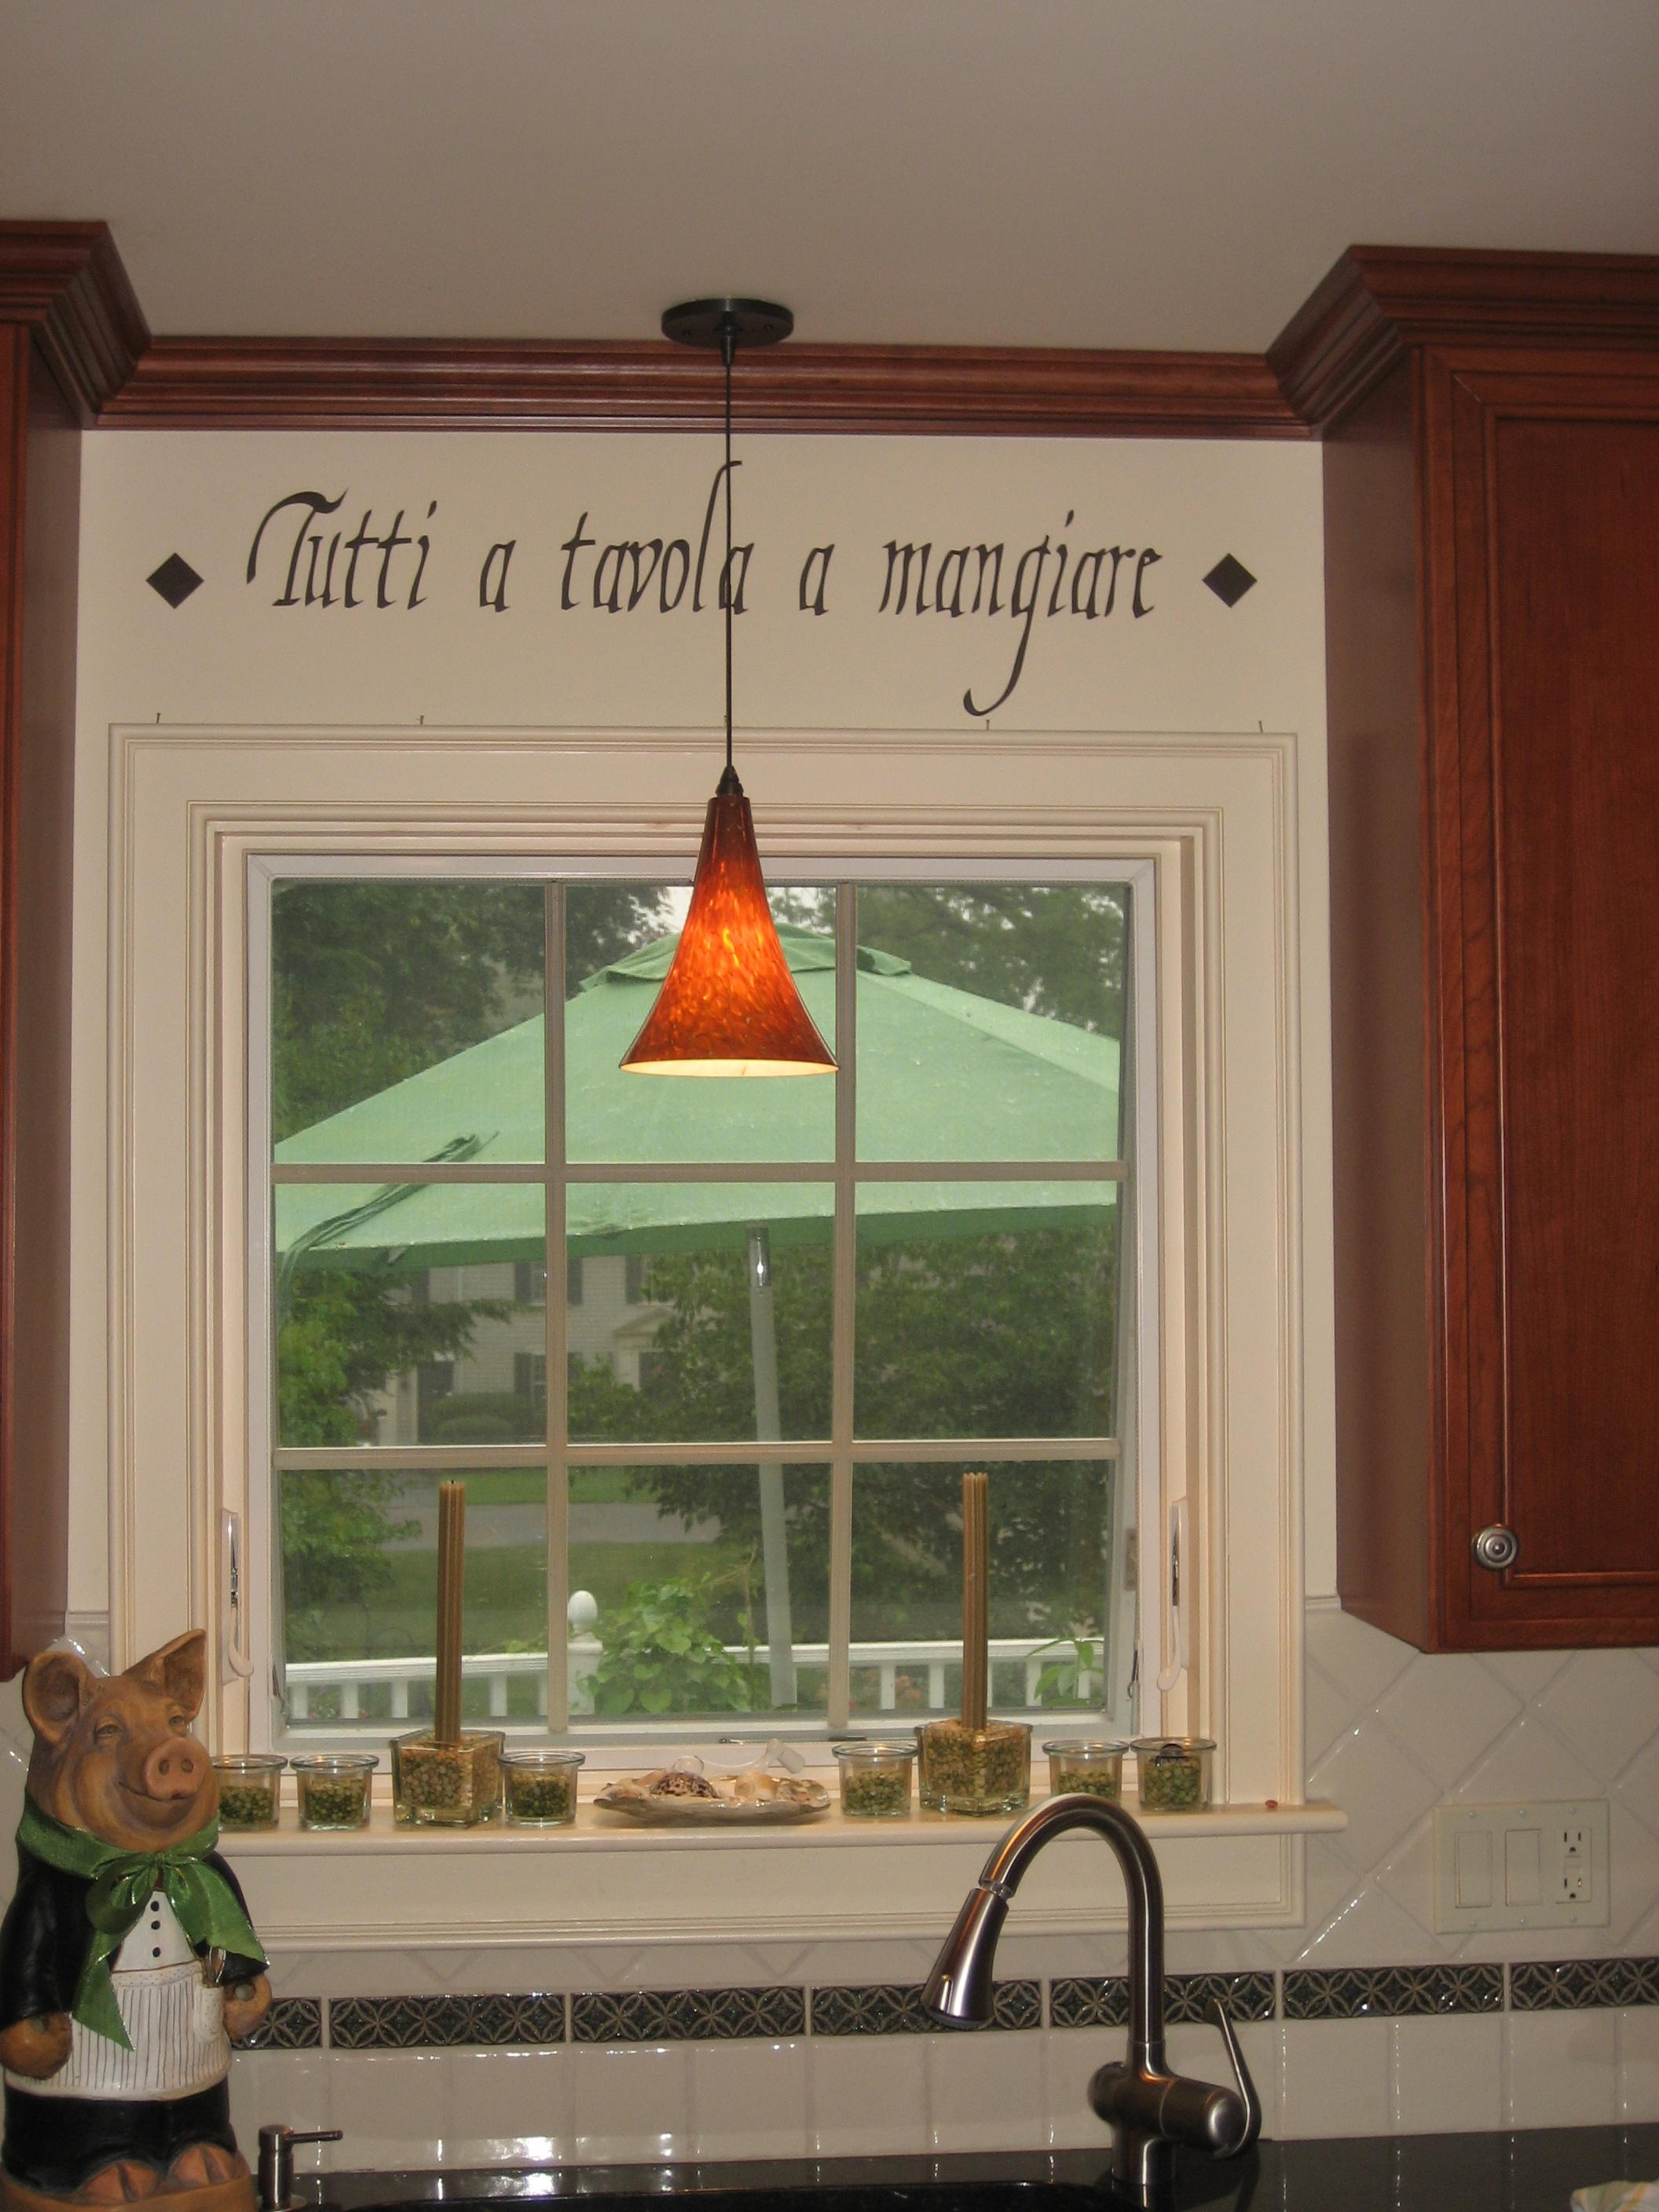 Italian Kitchen Quotes – Italian Kitchen Sayings And Wall Decors For Italian Wall Art For The Kitchen (View 11 of 20)